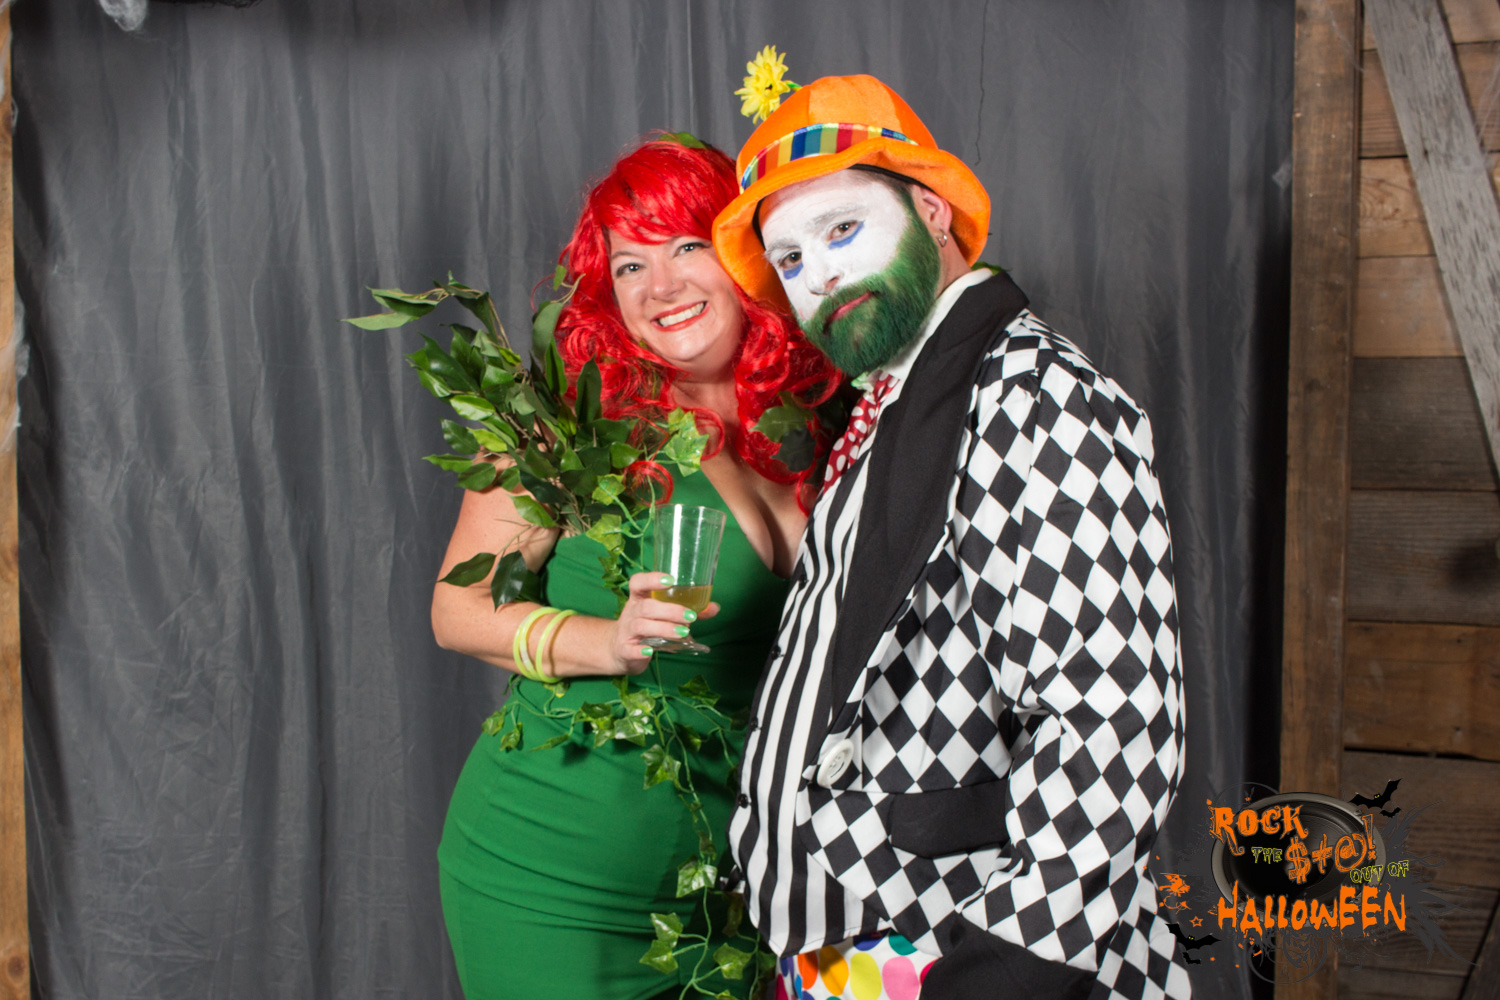 Halloween-PhotoBooth-035-6764